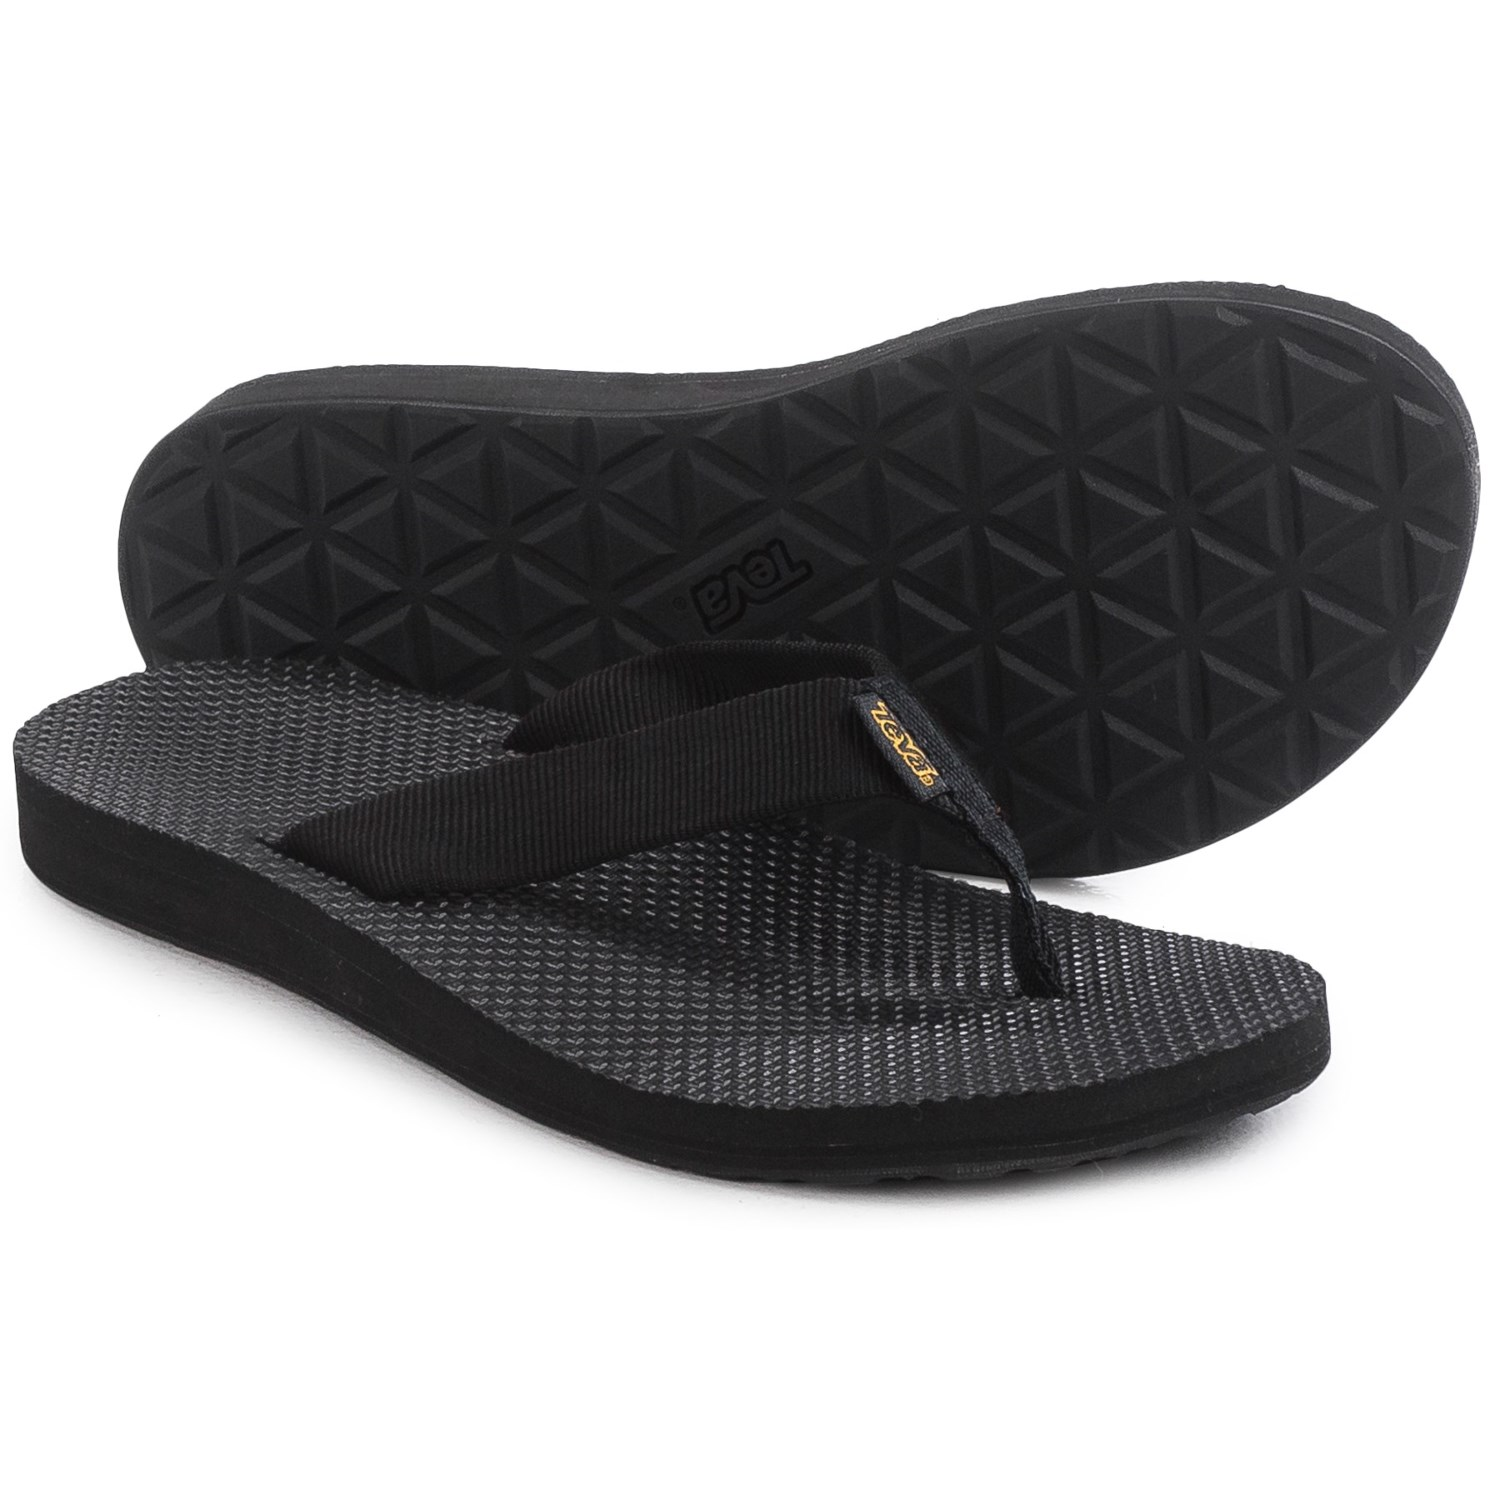 Shop the Women's Skinny Classic Flip-Flops at ganjamoney.tk and see the entire selection of Women's Footwear. Free Shipping Available.